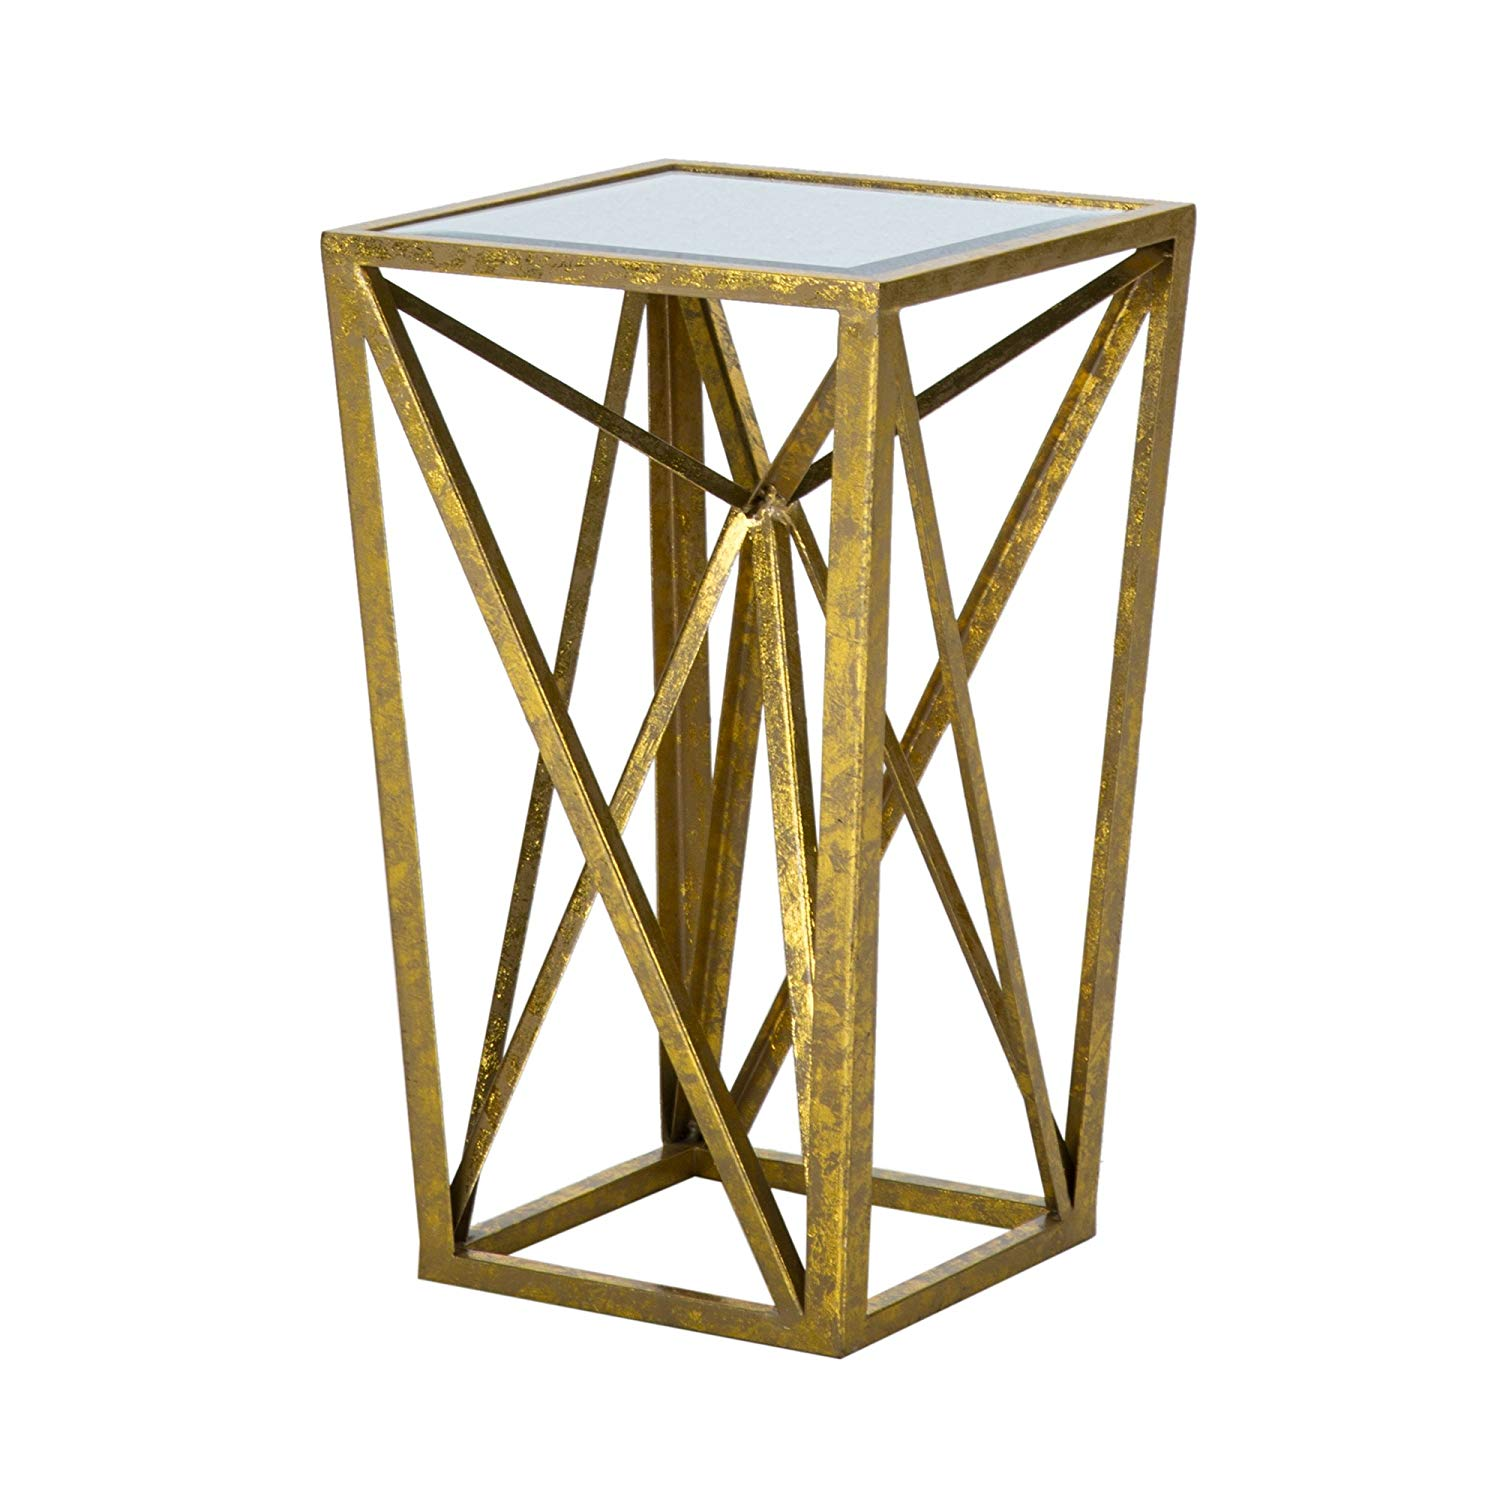 madison park zee accent tables mirror glass metal gold end table side angular design modern style piece top hollow round small with marble outdoor shoe storage cube coffee coca